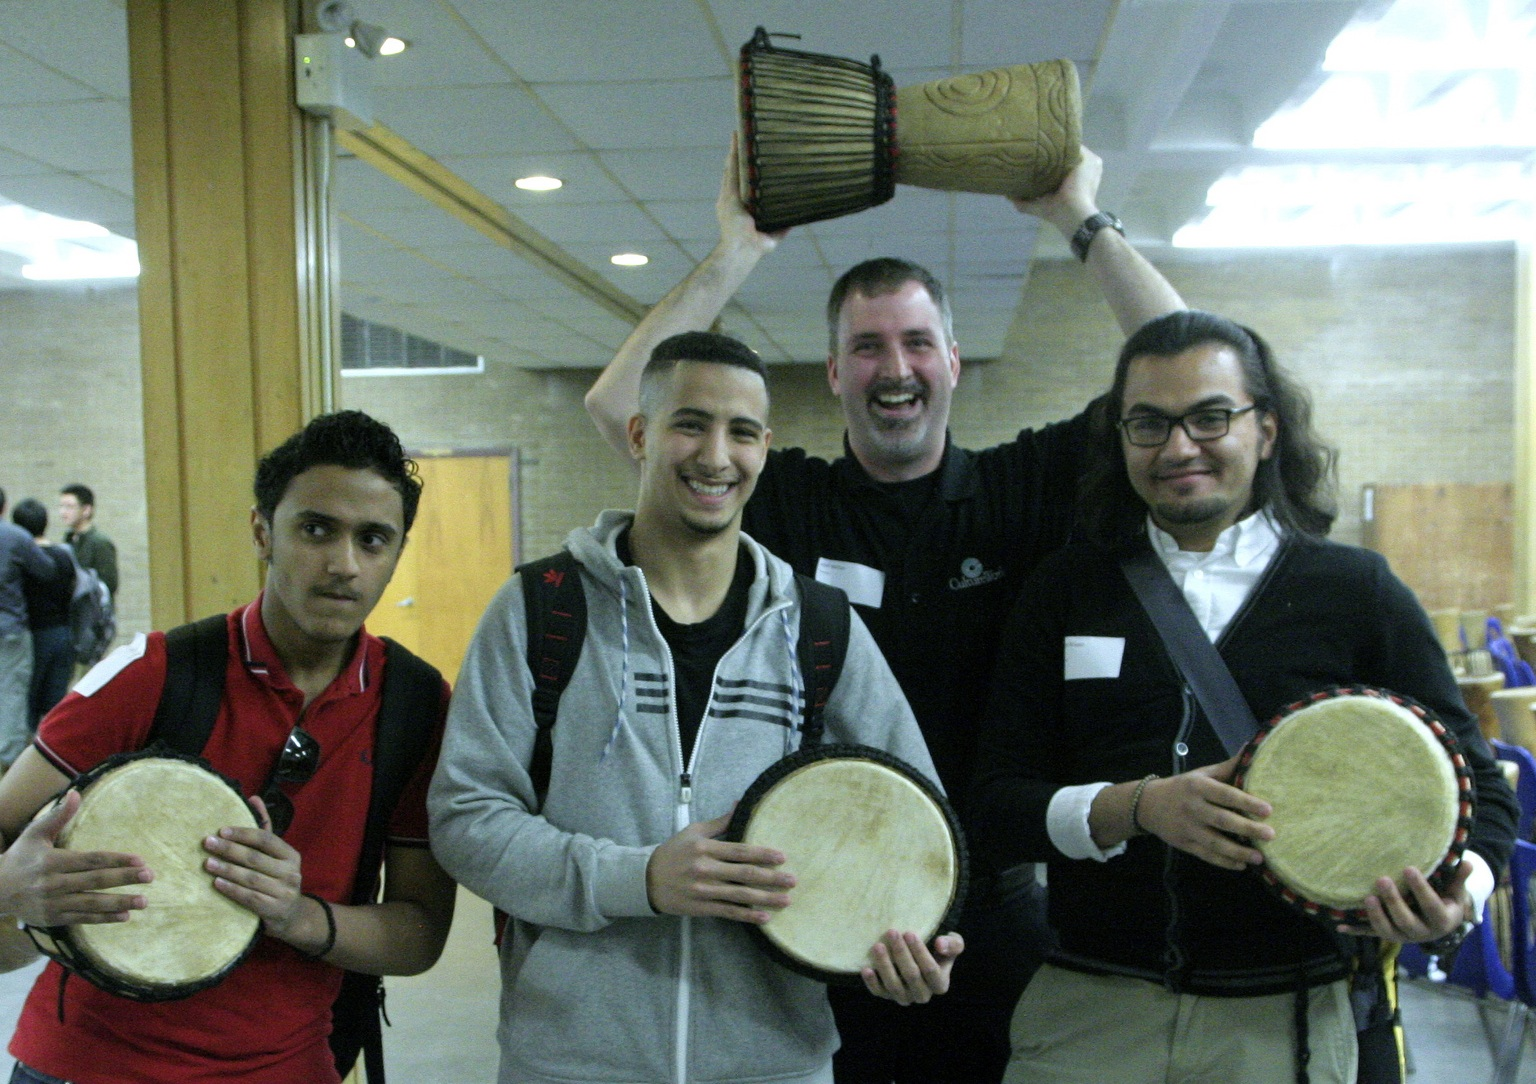 A teacher has fun with CultureWorks students at the Drum Café Activity